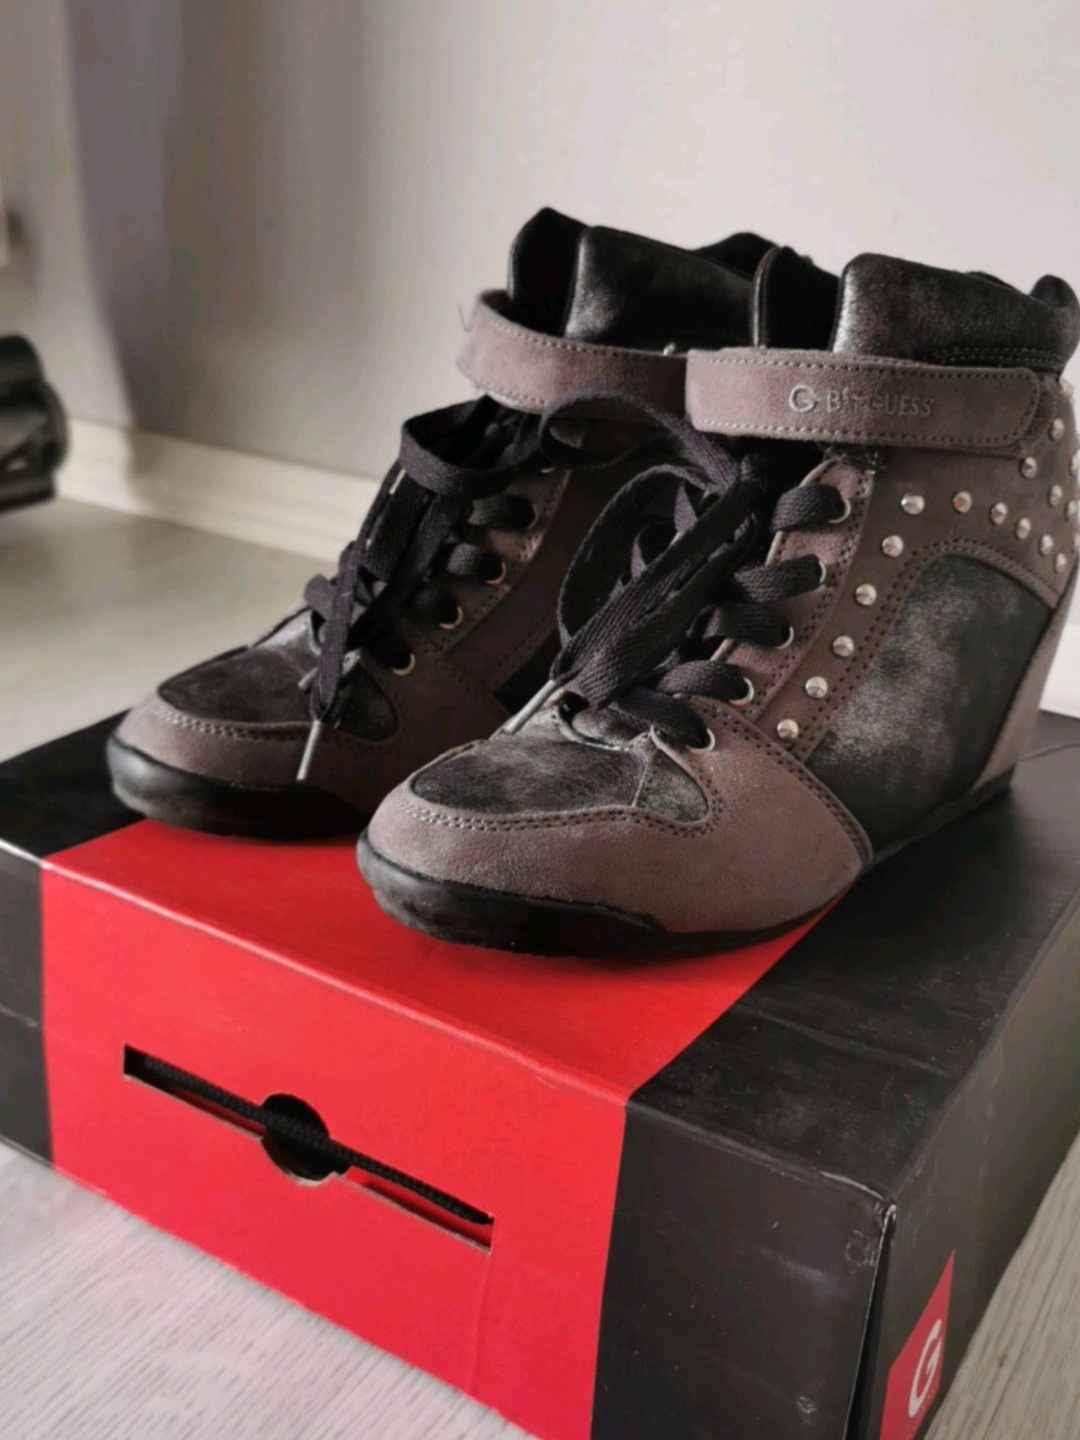 Women's sneakers - G BY GUESS photo 1